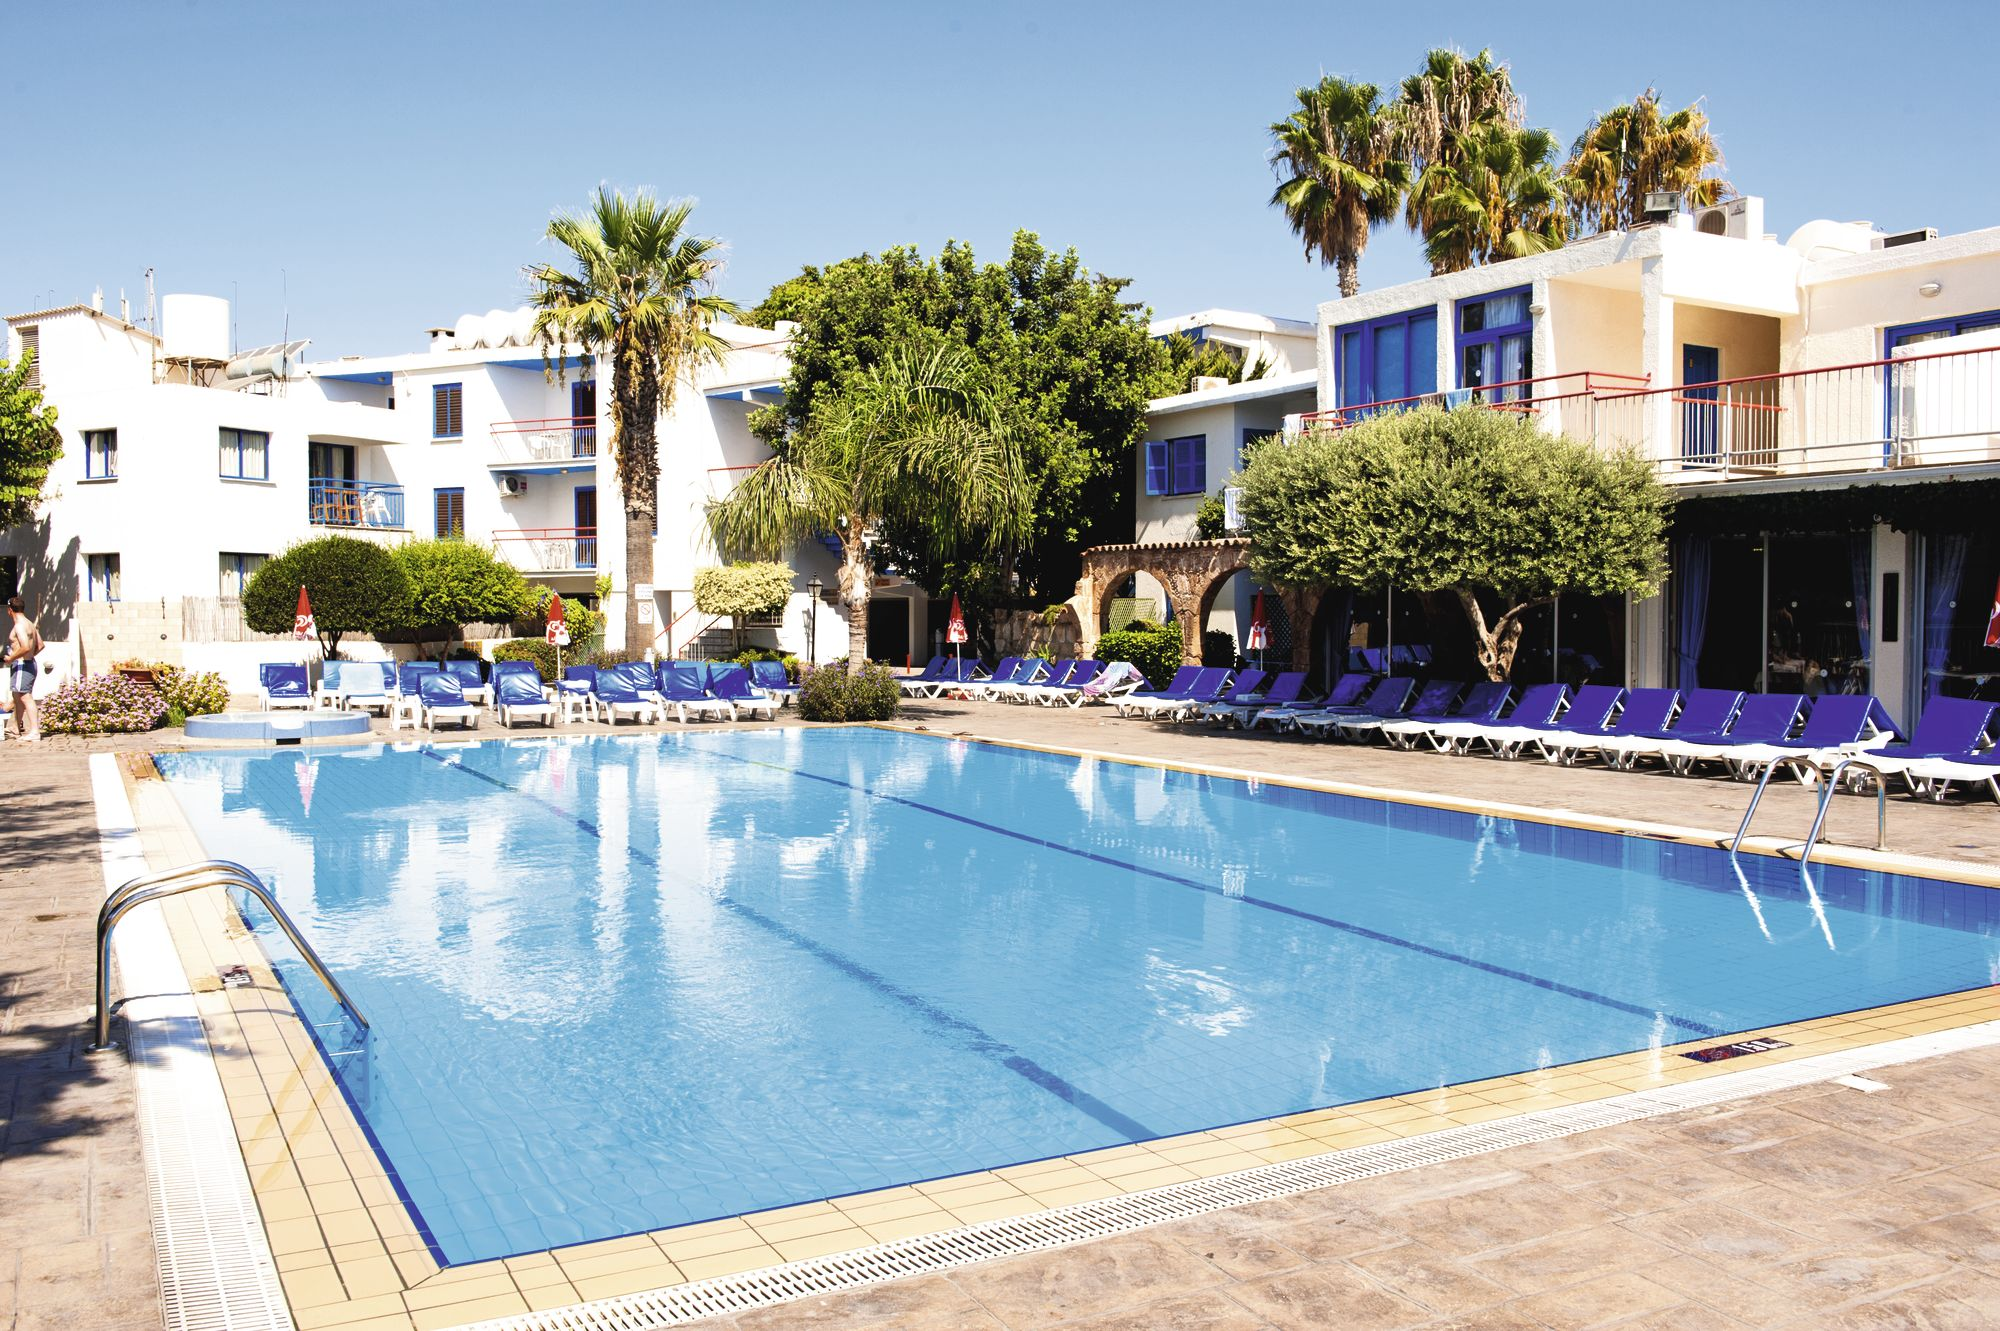 Holiday to Green Bungalows Apts in AYIA NAPA (CYPRUS) for 3 nights (SC) departing from birmingham on 10 May